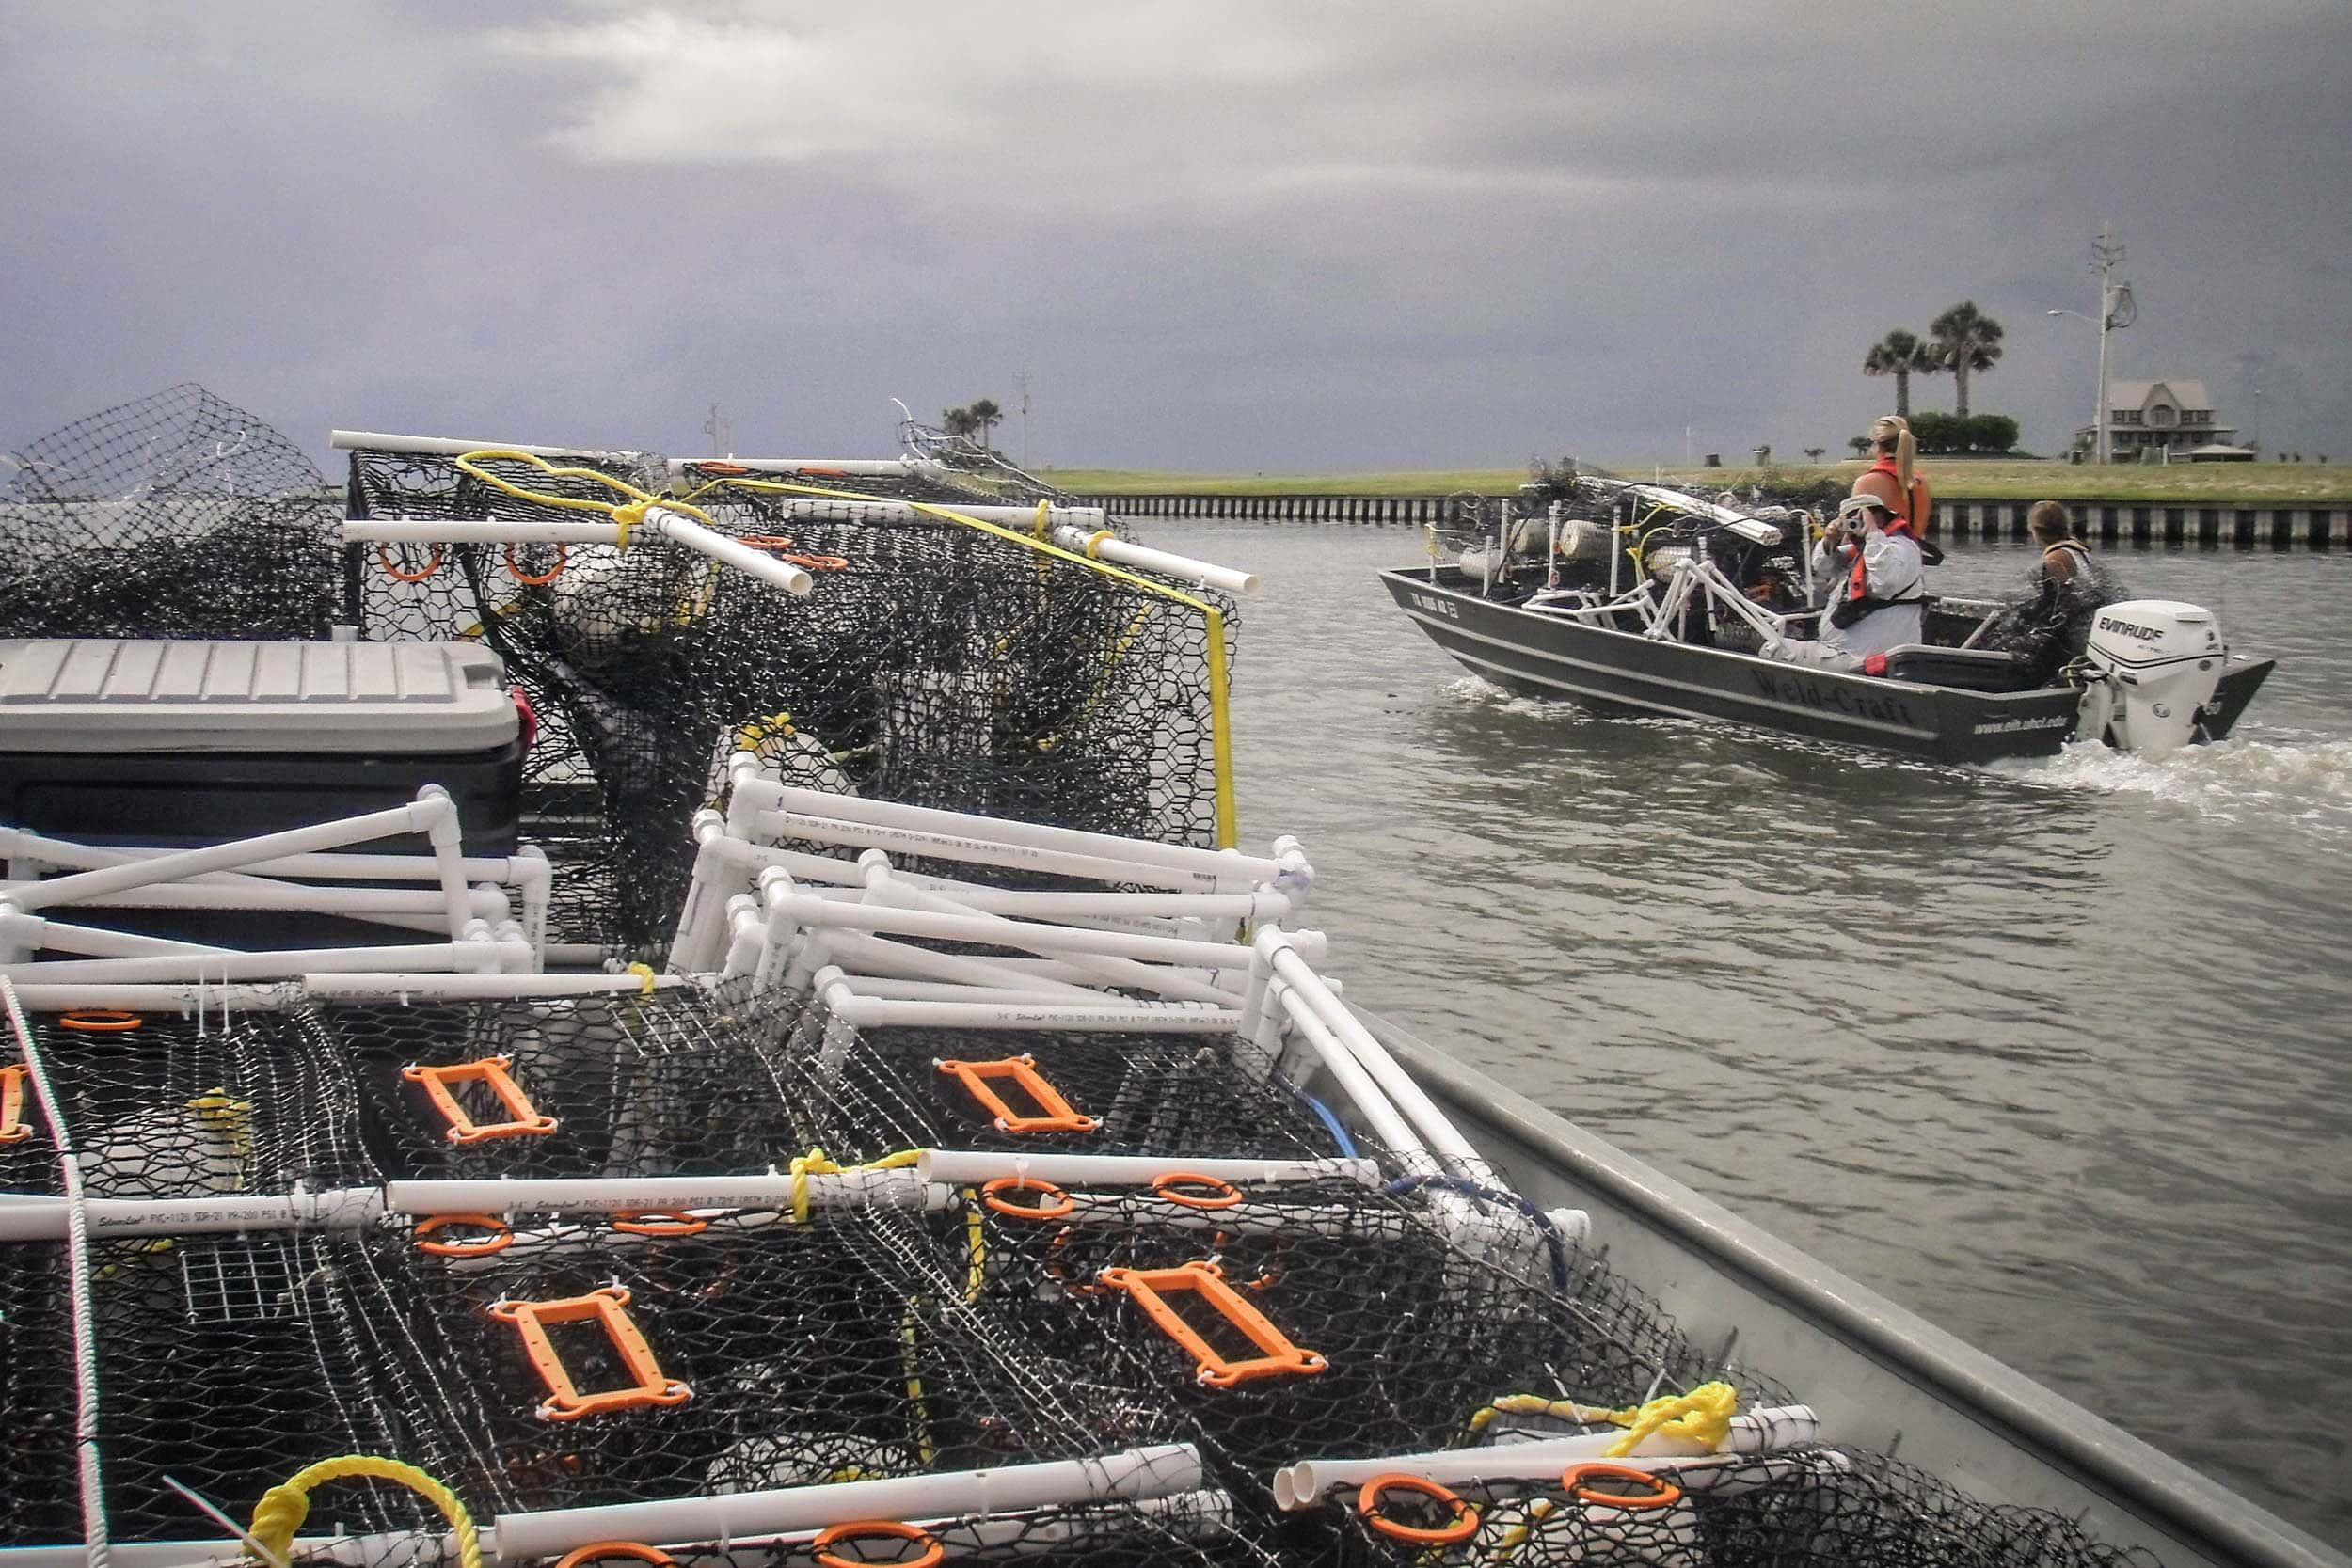 With boats fully loaded, EIH's crew heads out to deploy crab traps